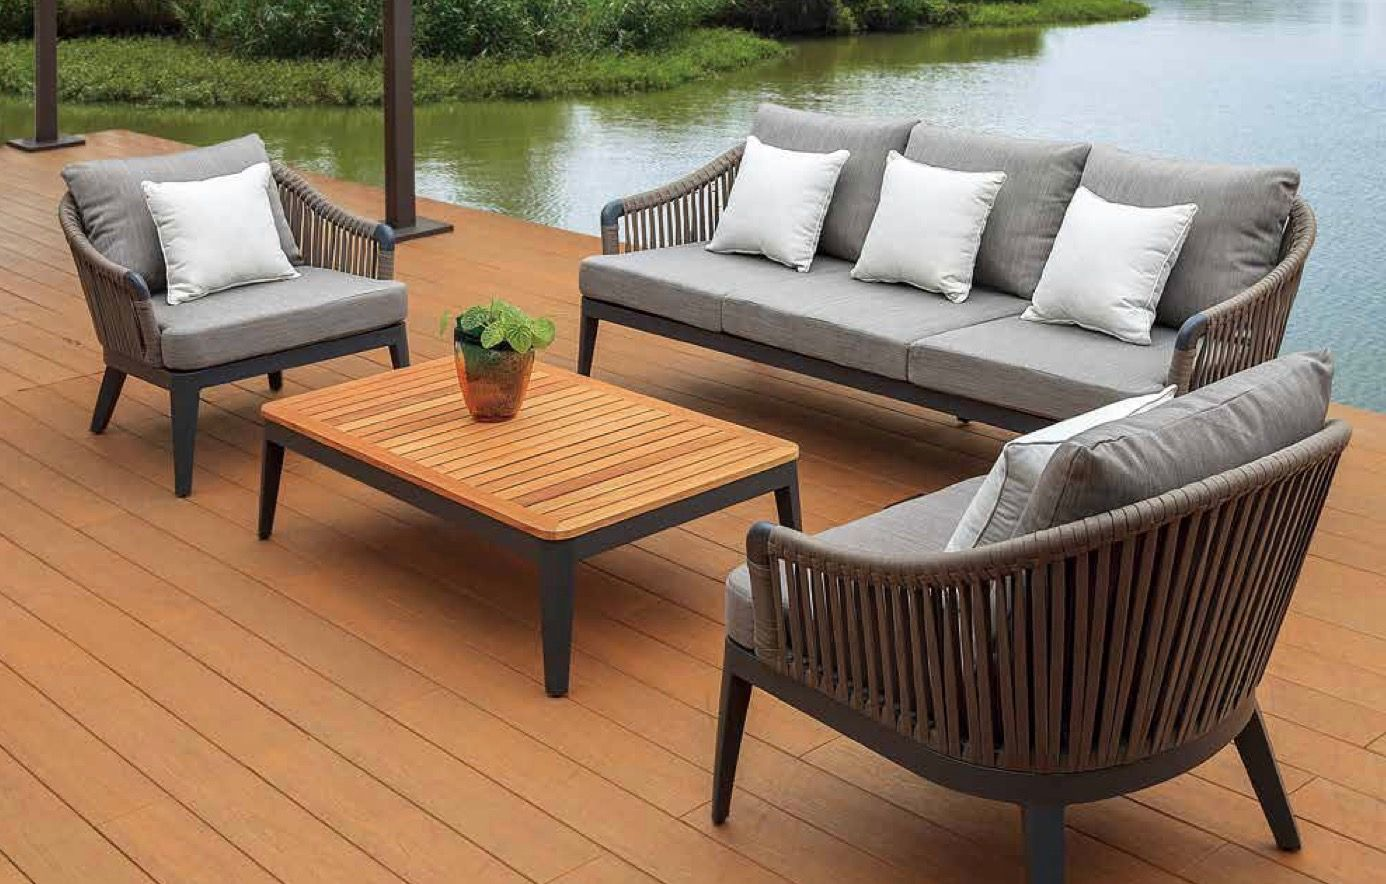 Pin By Ivan Vermeulen On Mondecasa Europe Pool Furniture Ashley Furniture Sale Outdoor Furniture Sets